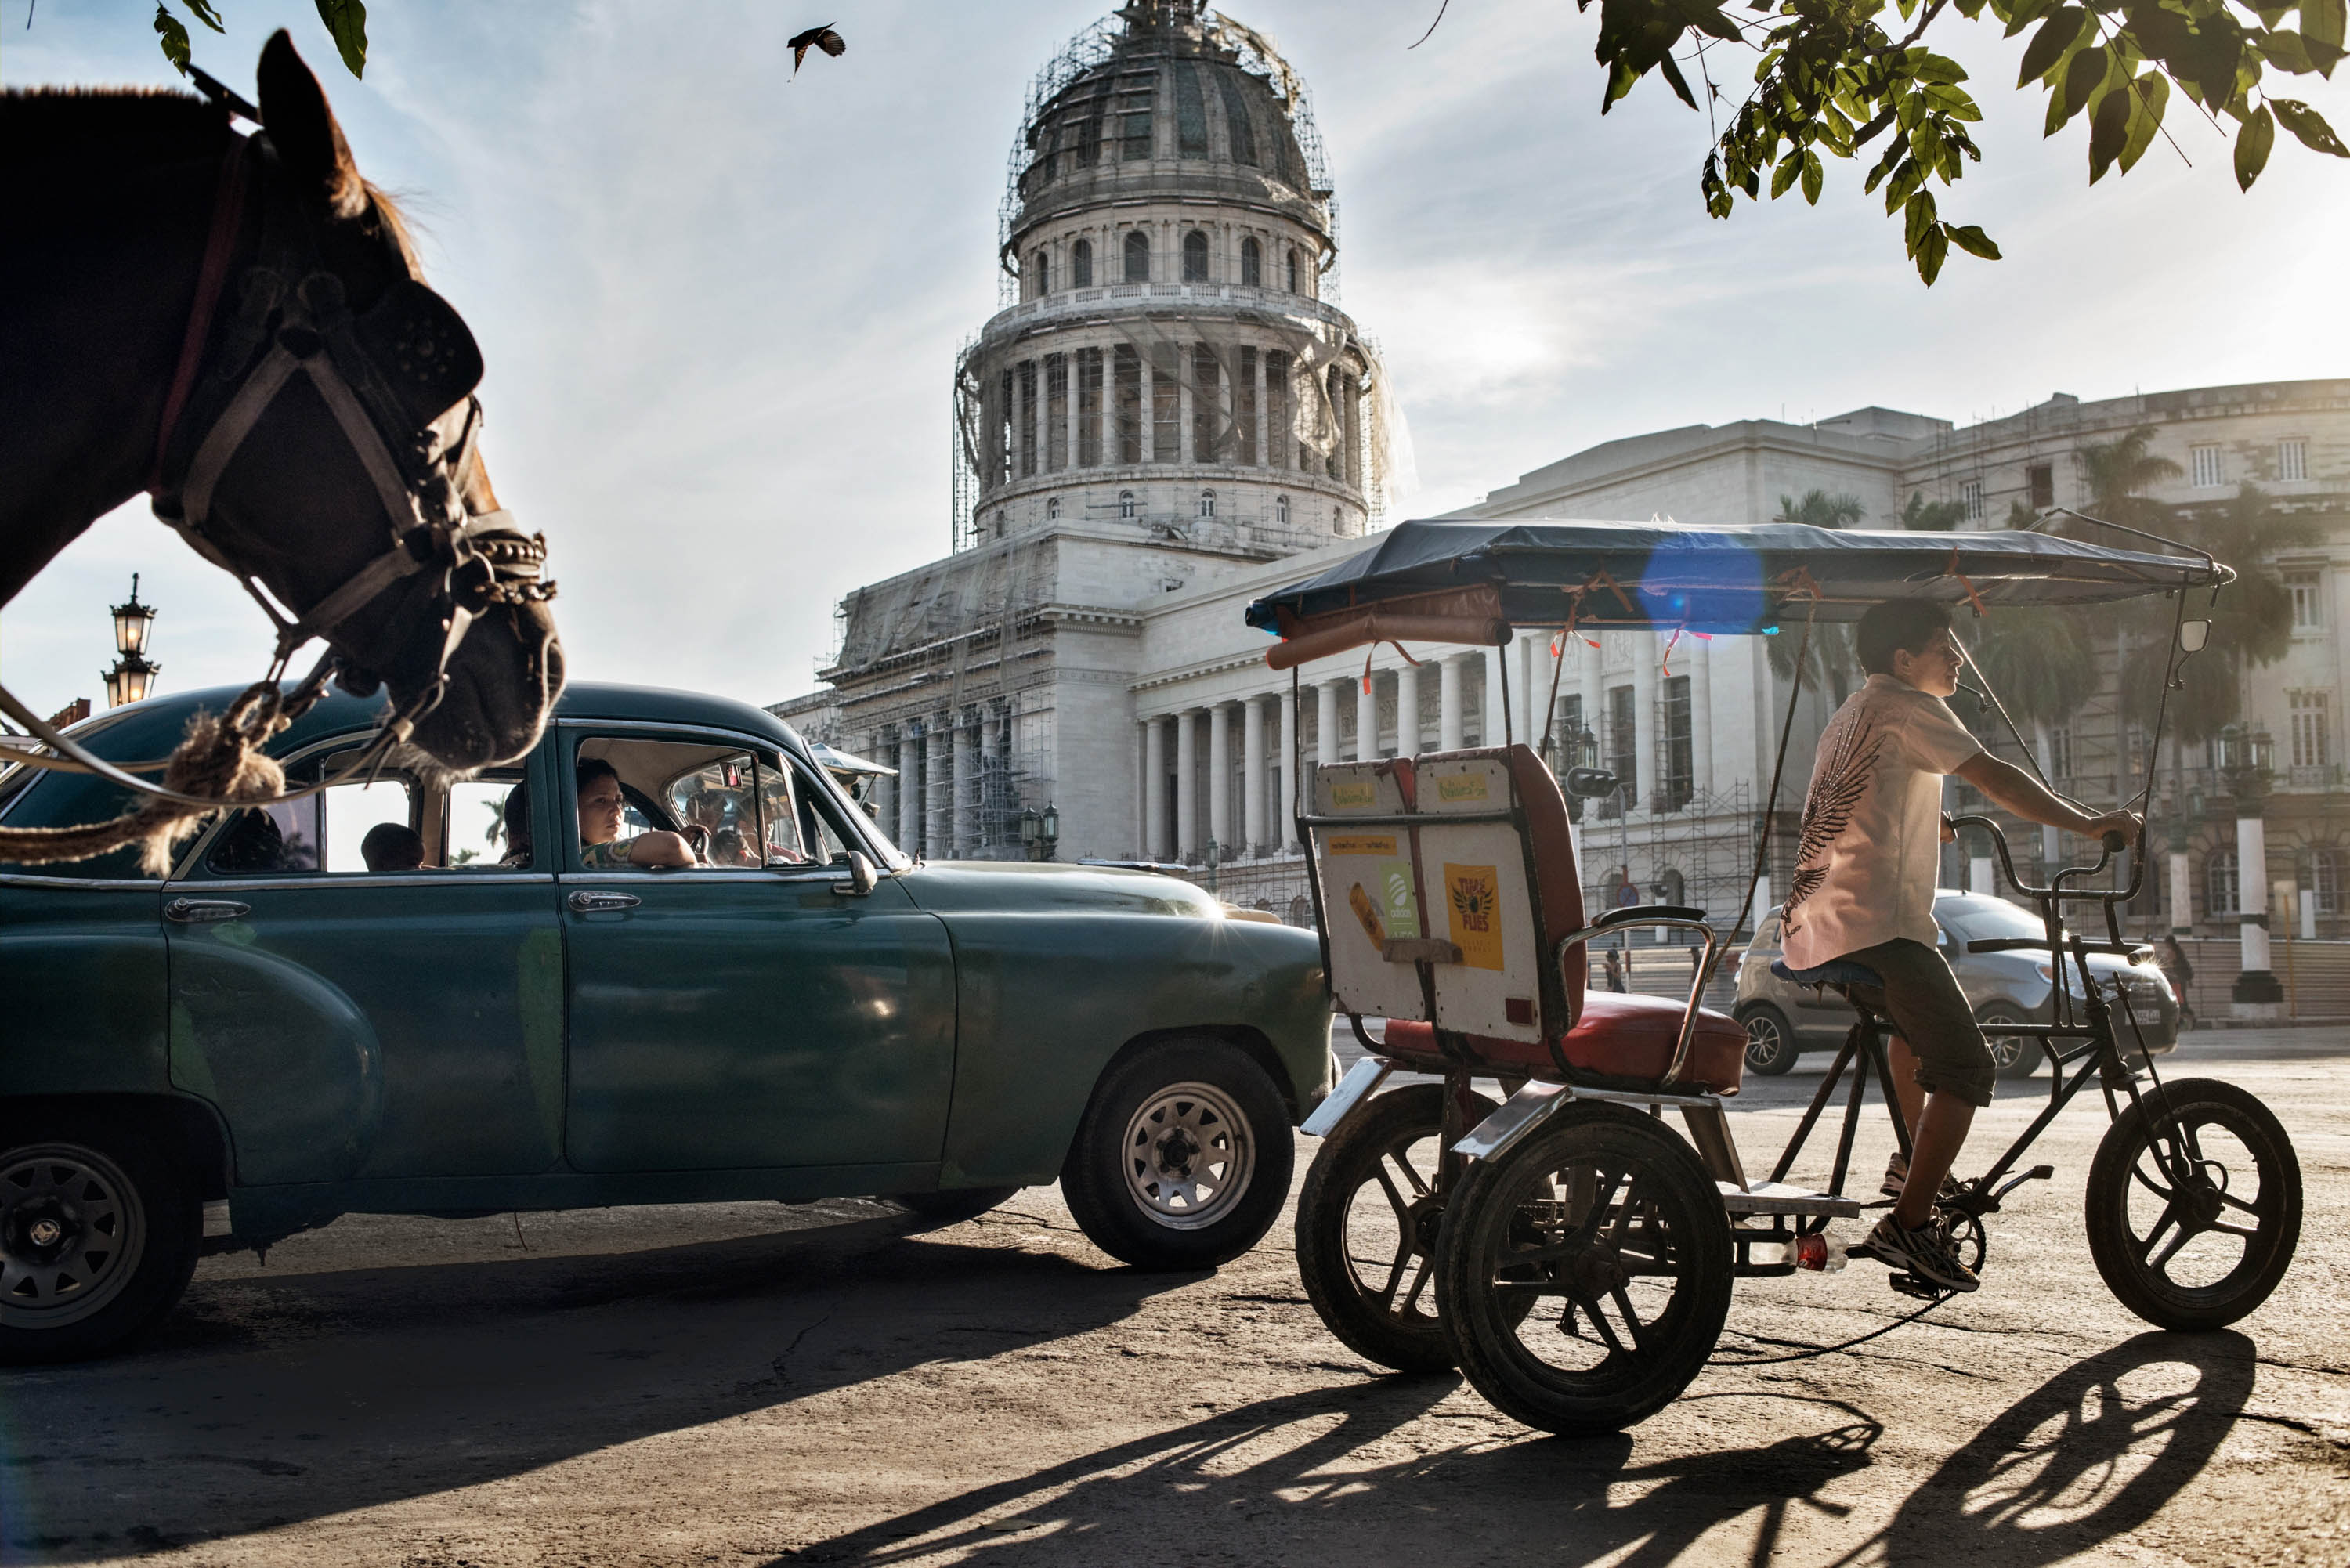 Havana is divided between new and old by the stately boulevard that runs past El Capitolio, inspired by the U.S. Capitol building.